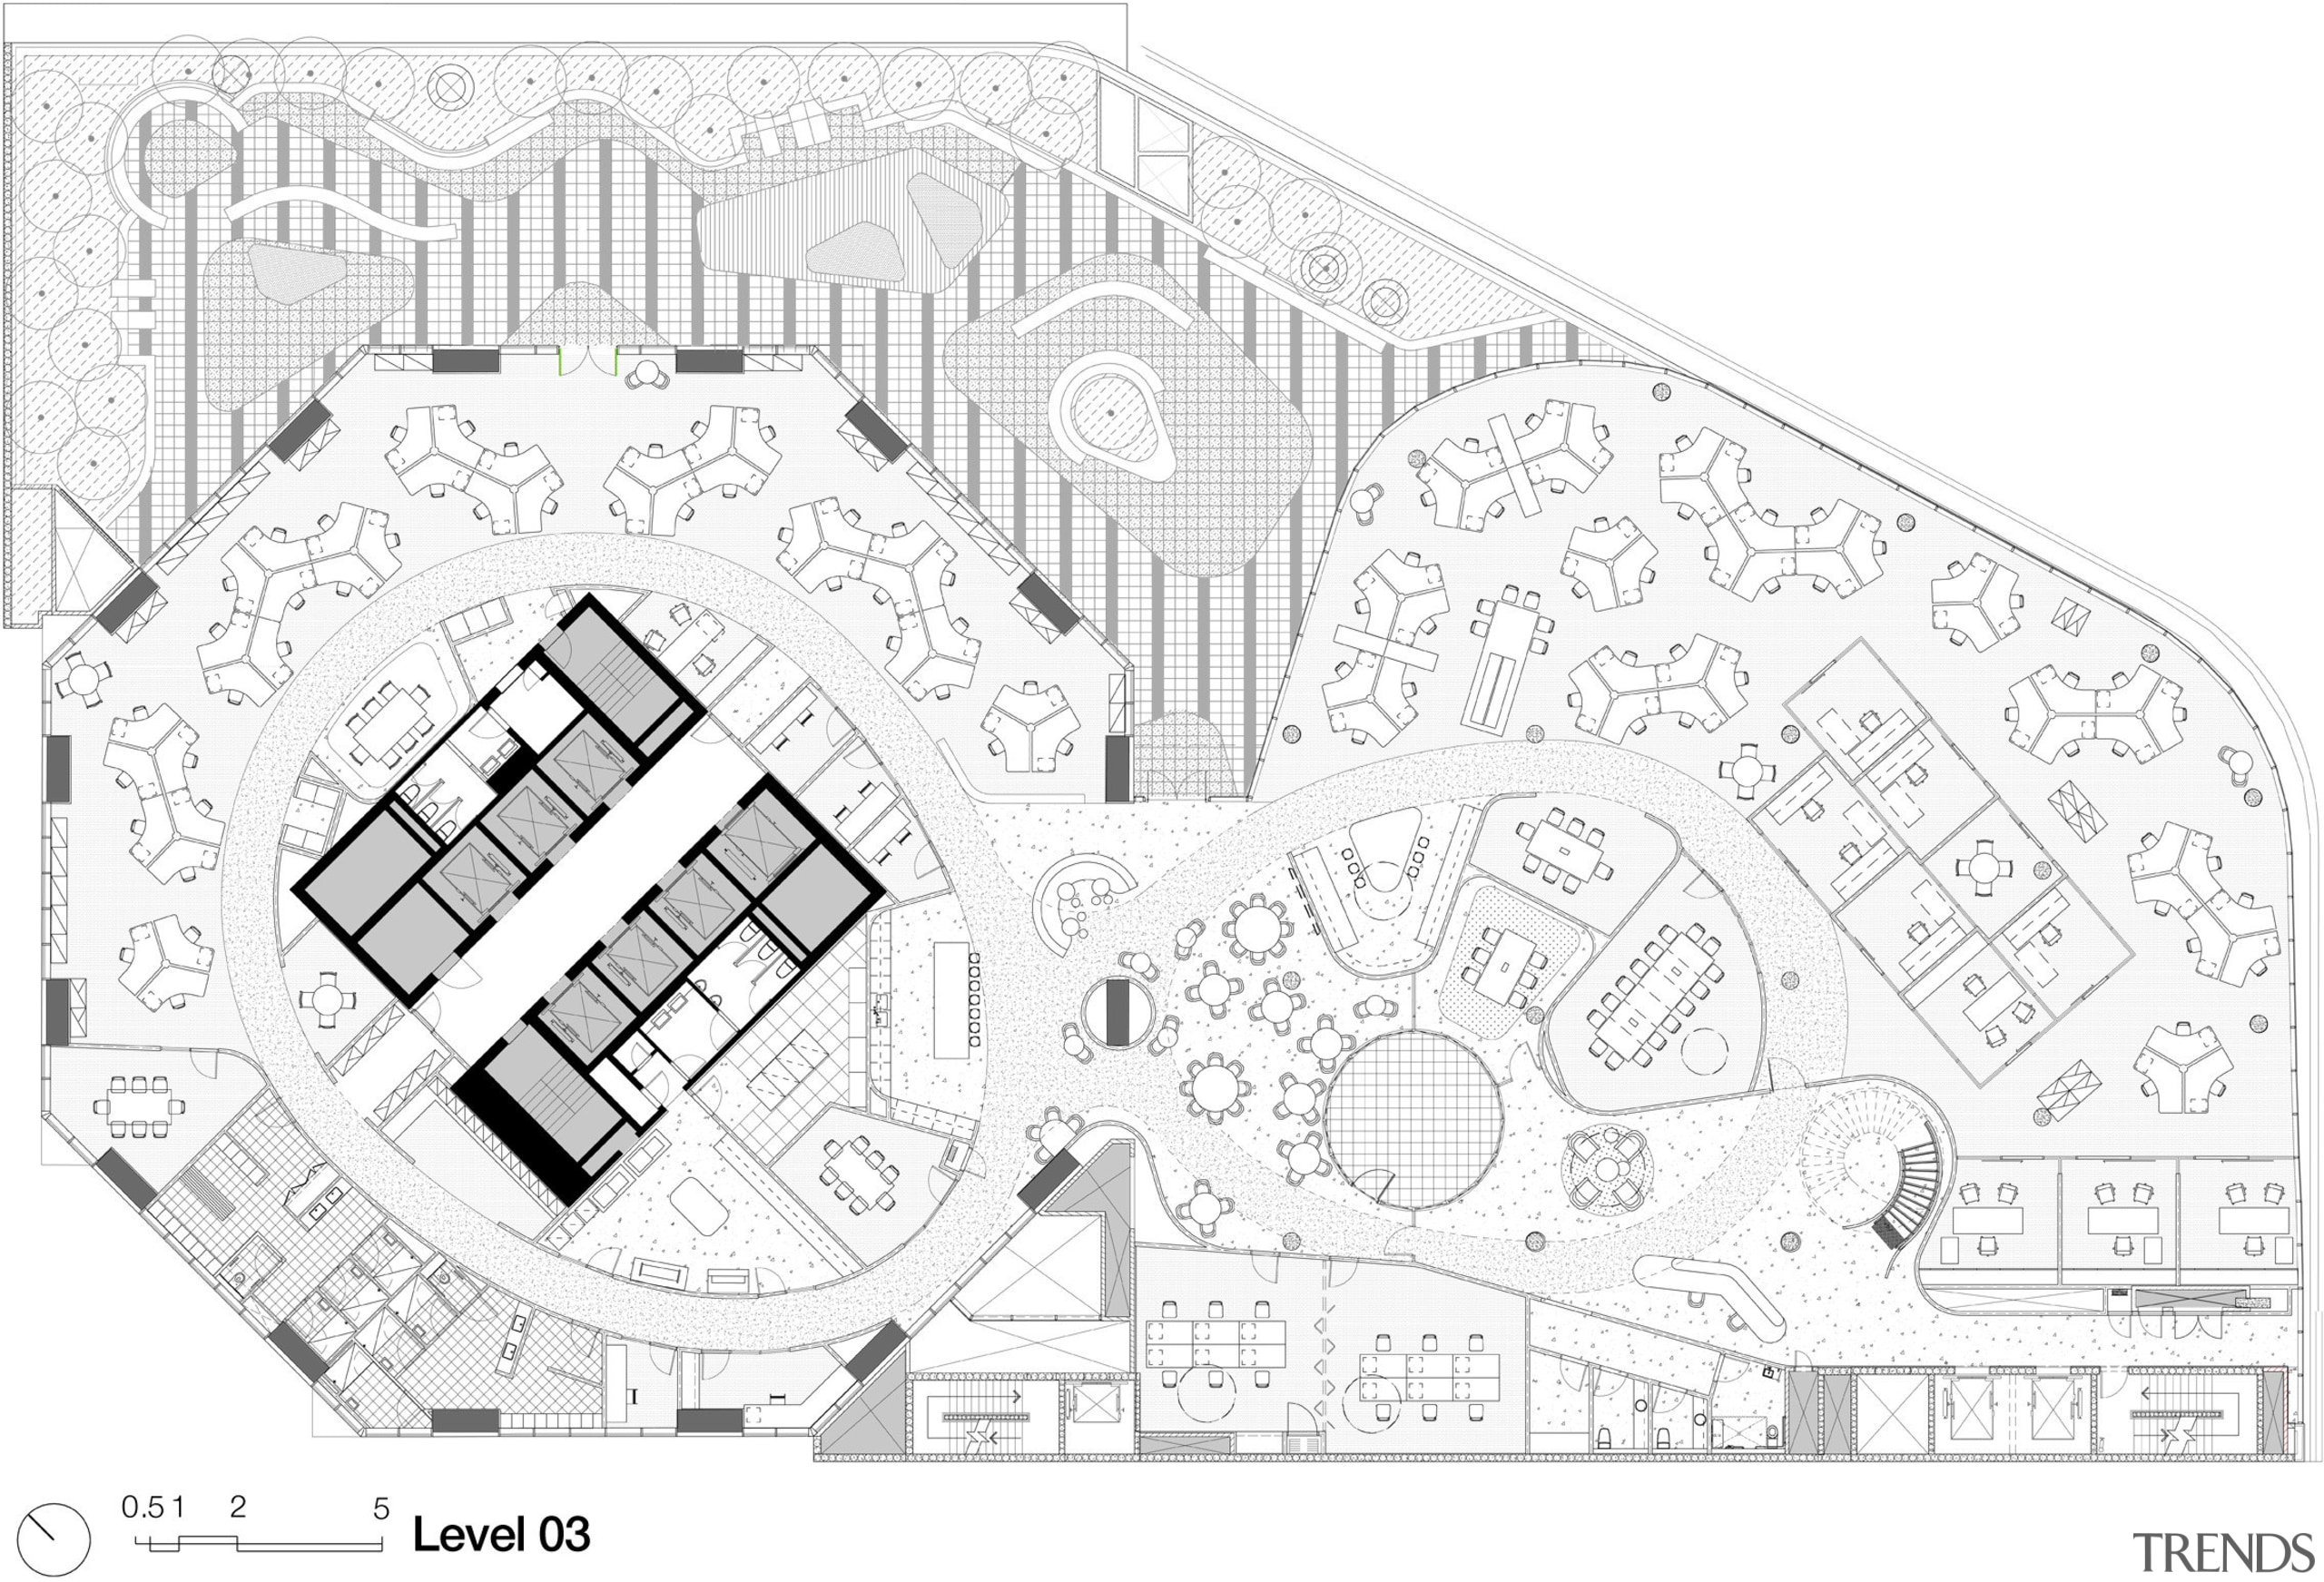 Plan of the Brookfield Multiplex office in Melbourne architecture, area, black and white, design, diagram, drawing, floor plan, font, line, line art, plan, product design, residential area, structure, text, urban design, white